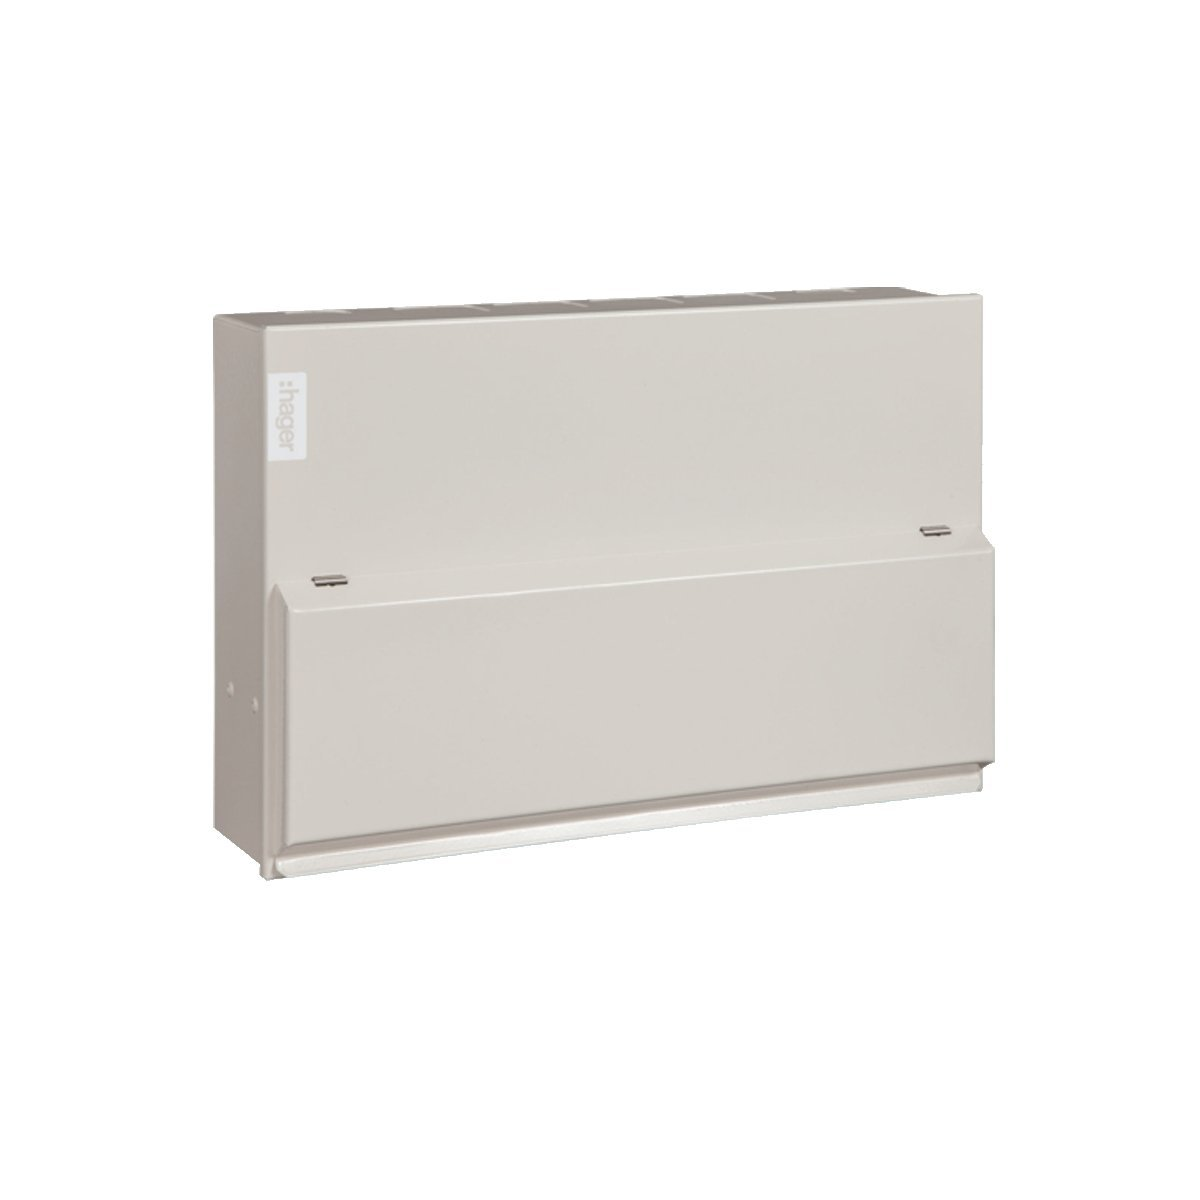 Hager VML410H - 10 Way 63A 30mA RCCB Incomer Metal Consumer Unit